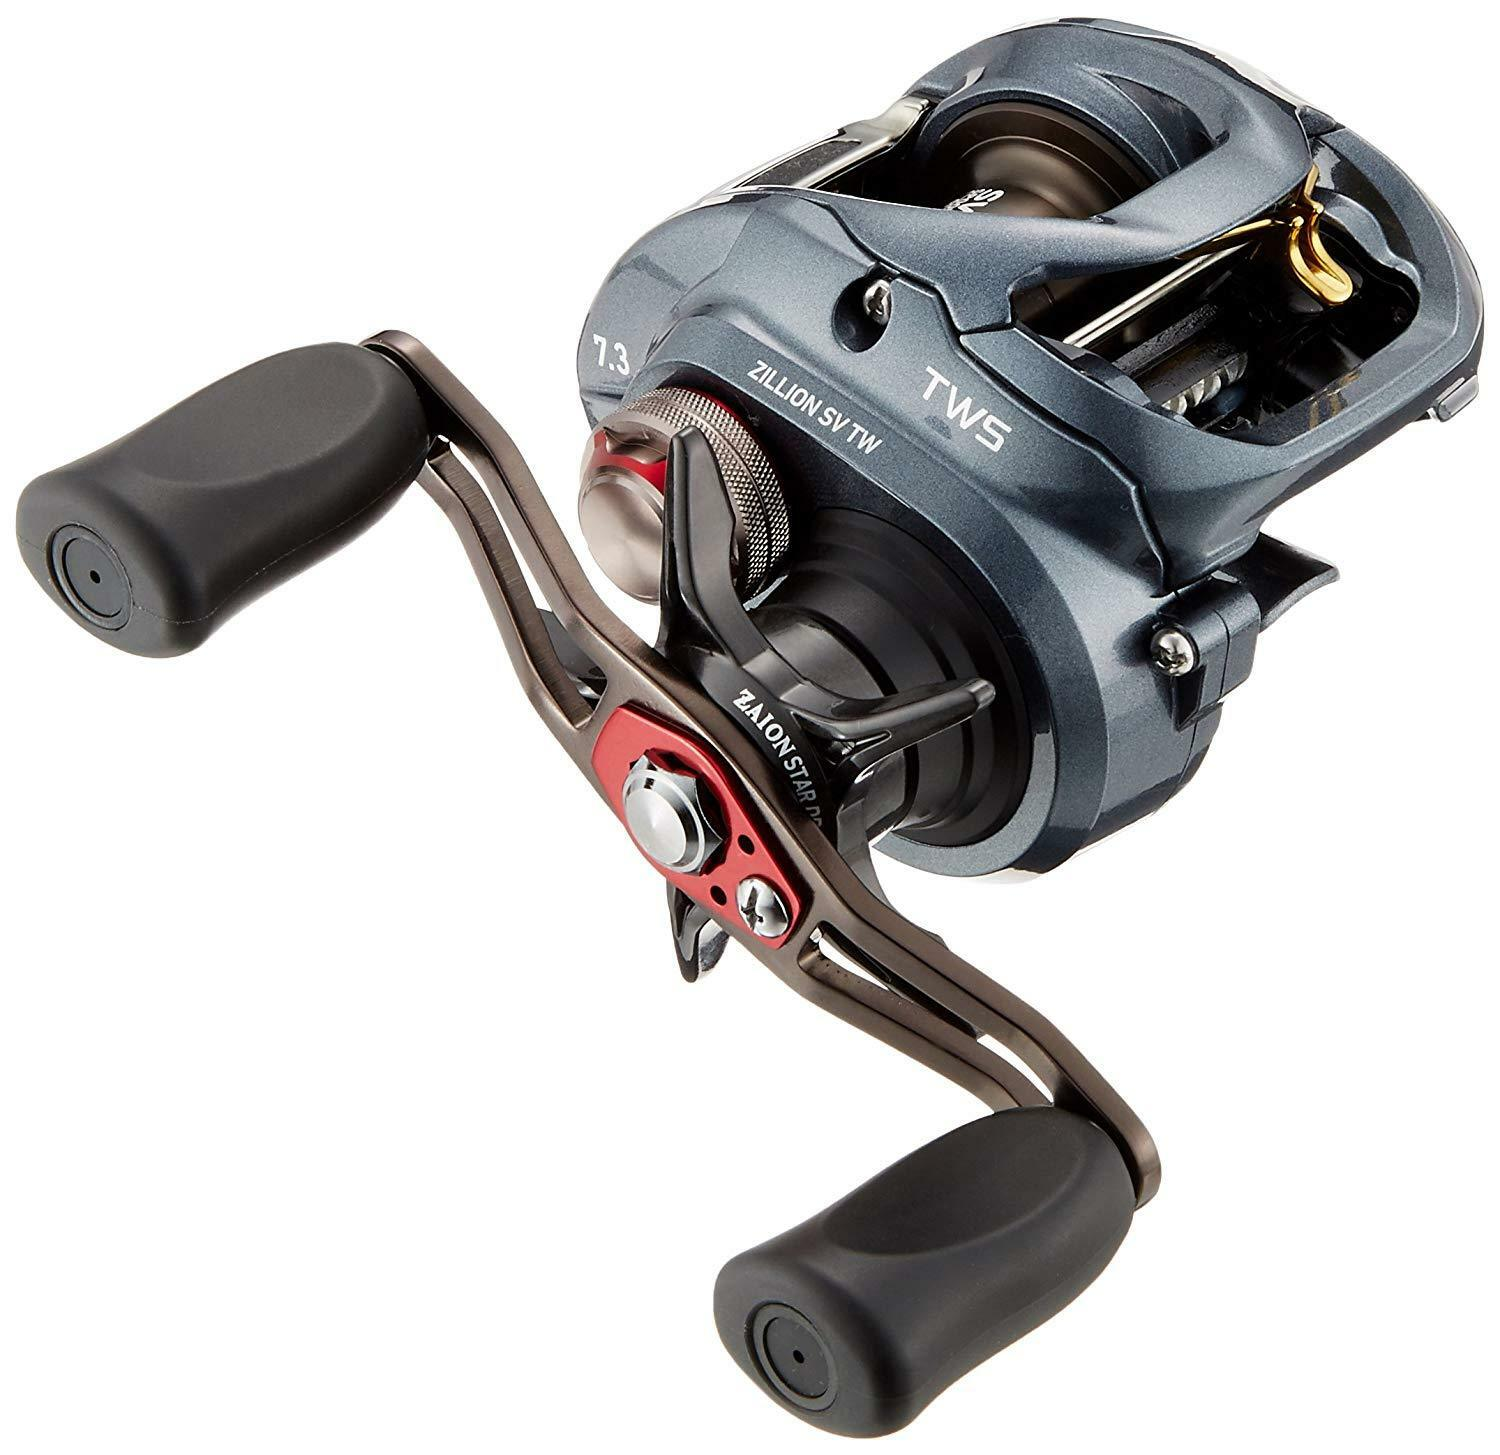 Daiwa Baitcasting Reels 16 ZILLION SV TW 1016SV-SH from japan【Brand New in Box】